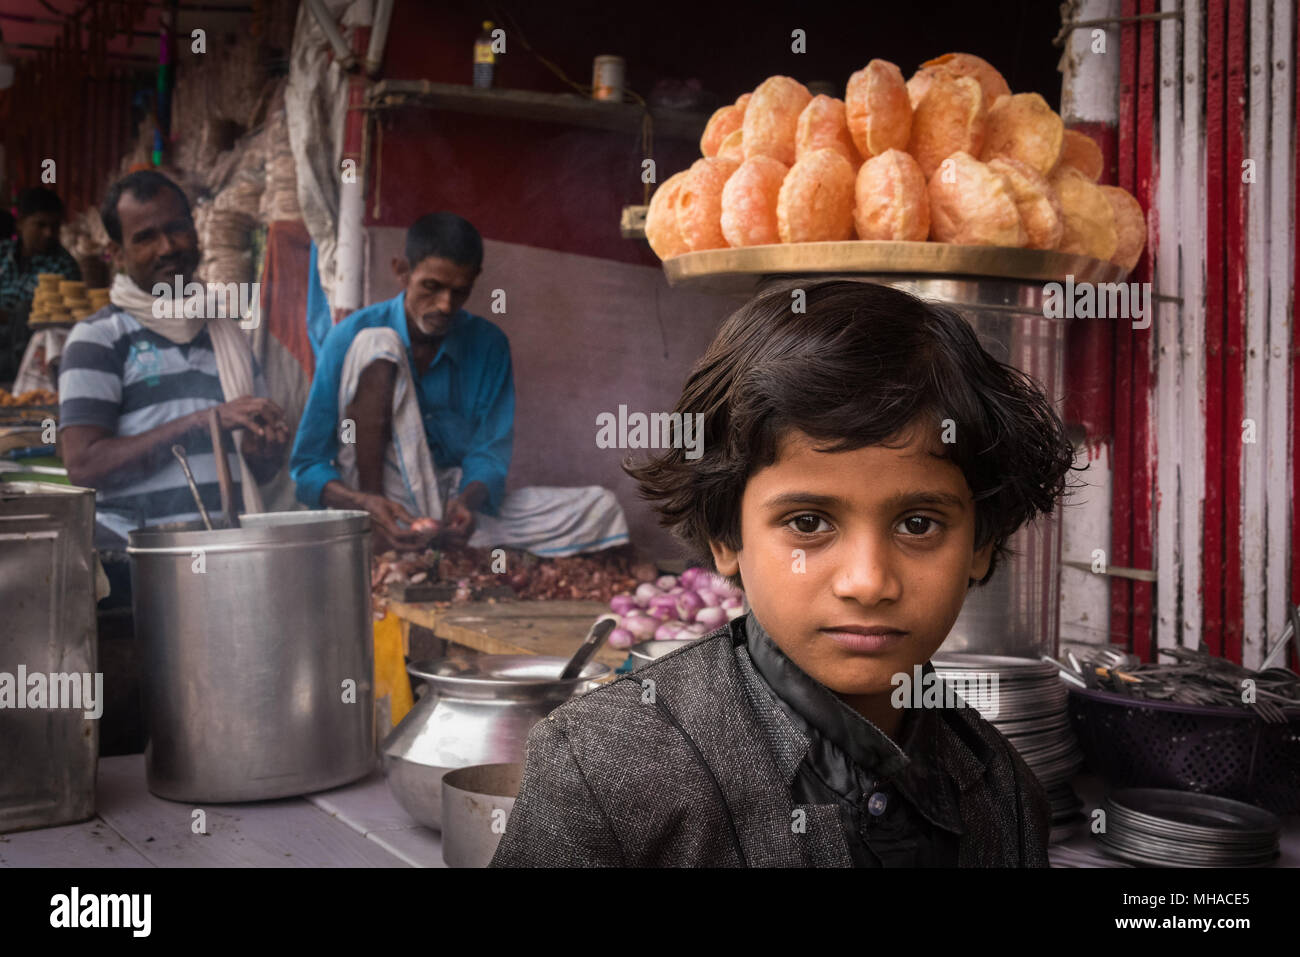 Portrait of a young boy at the Sonepur Mela, Sonepur, India. - Stock Image